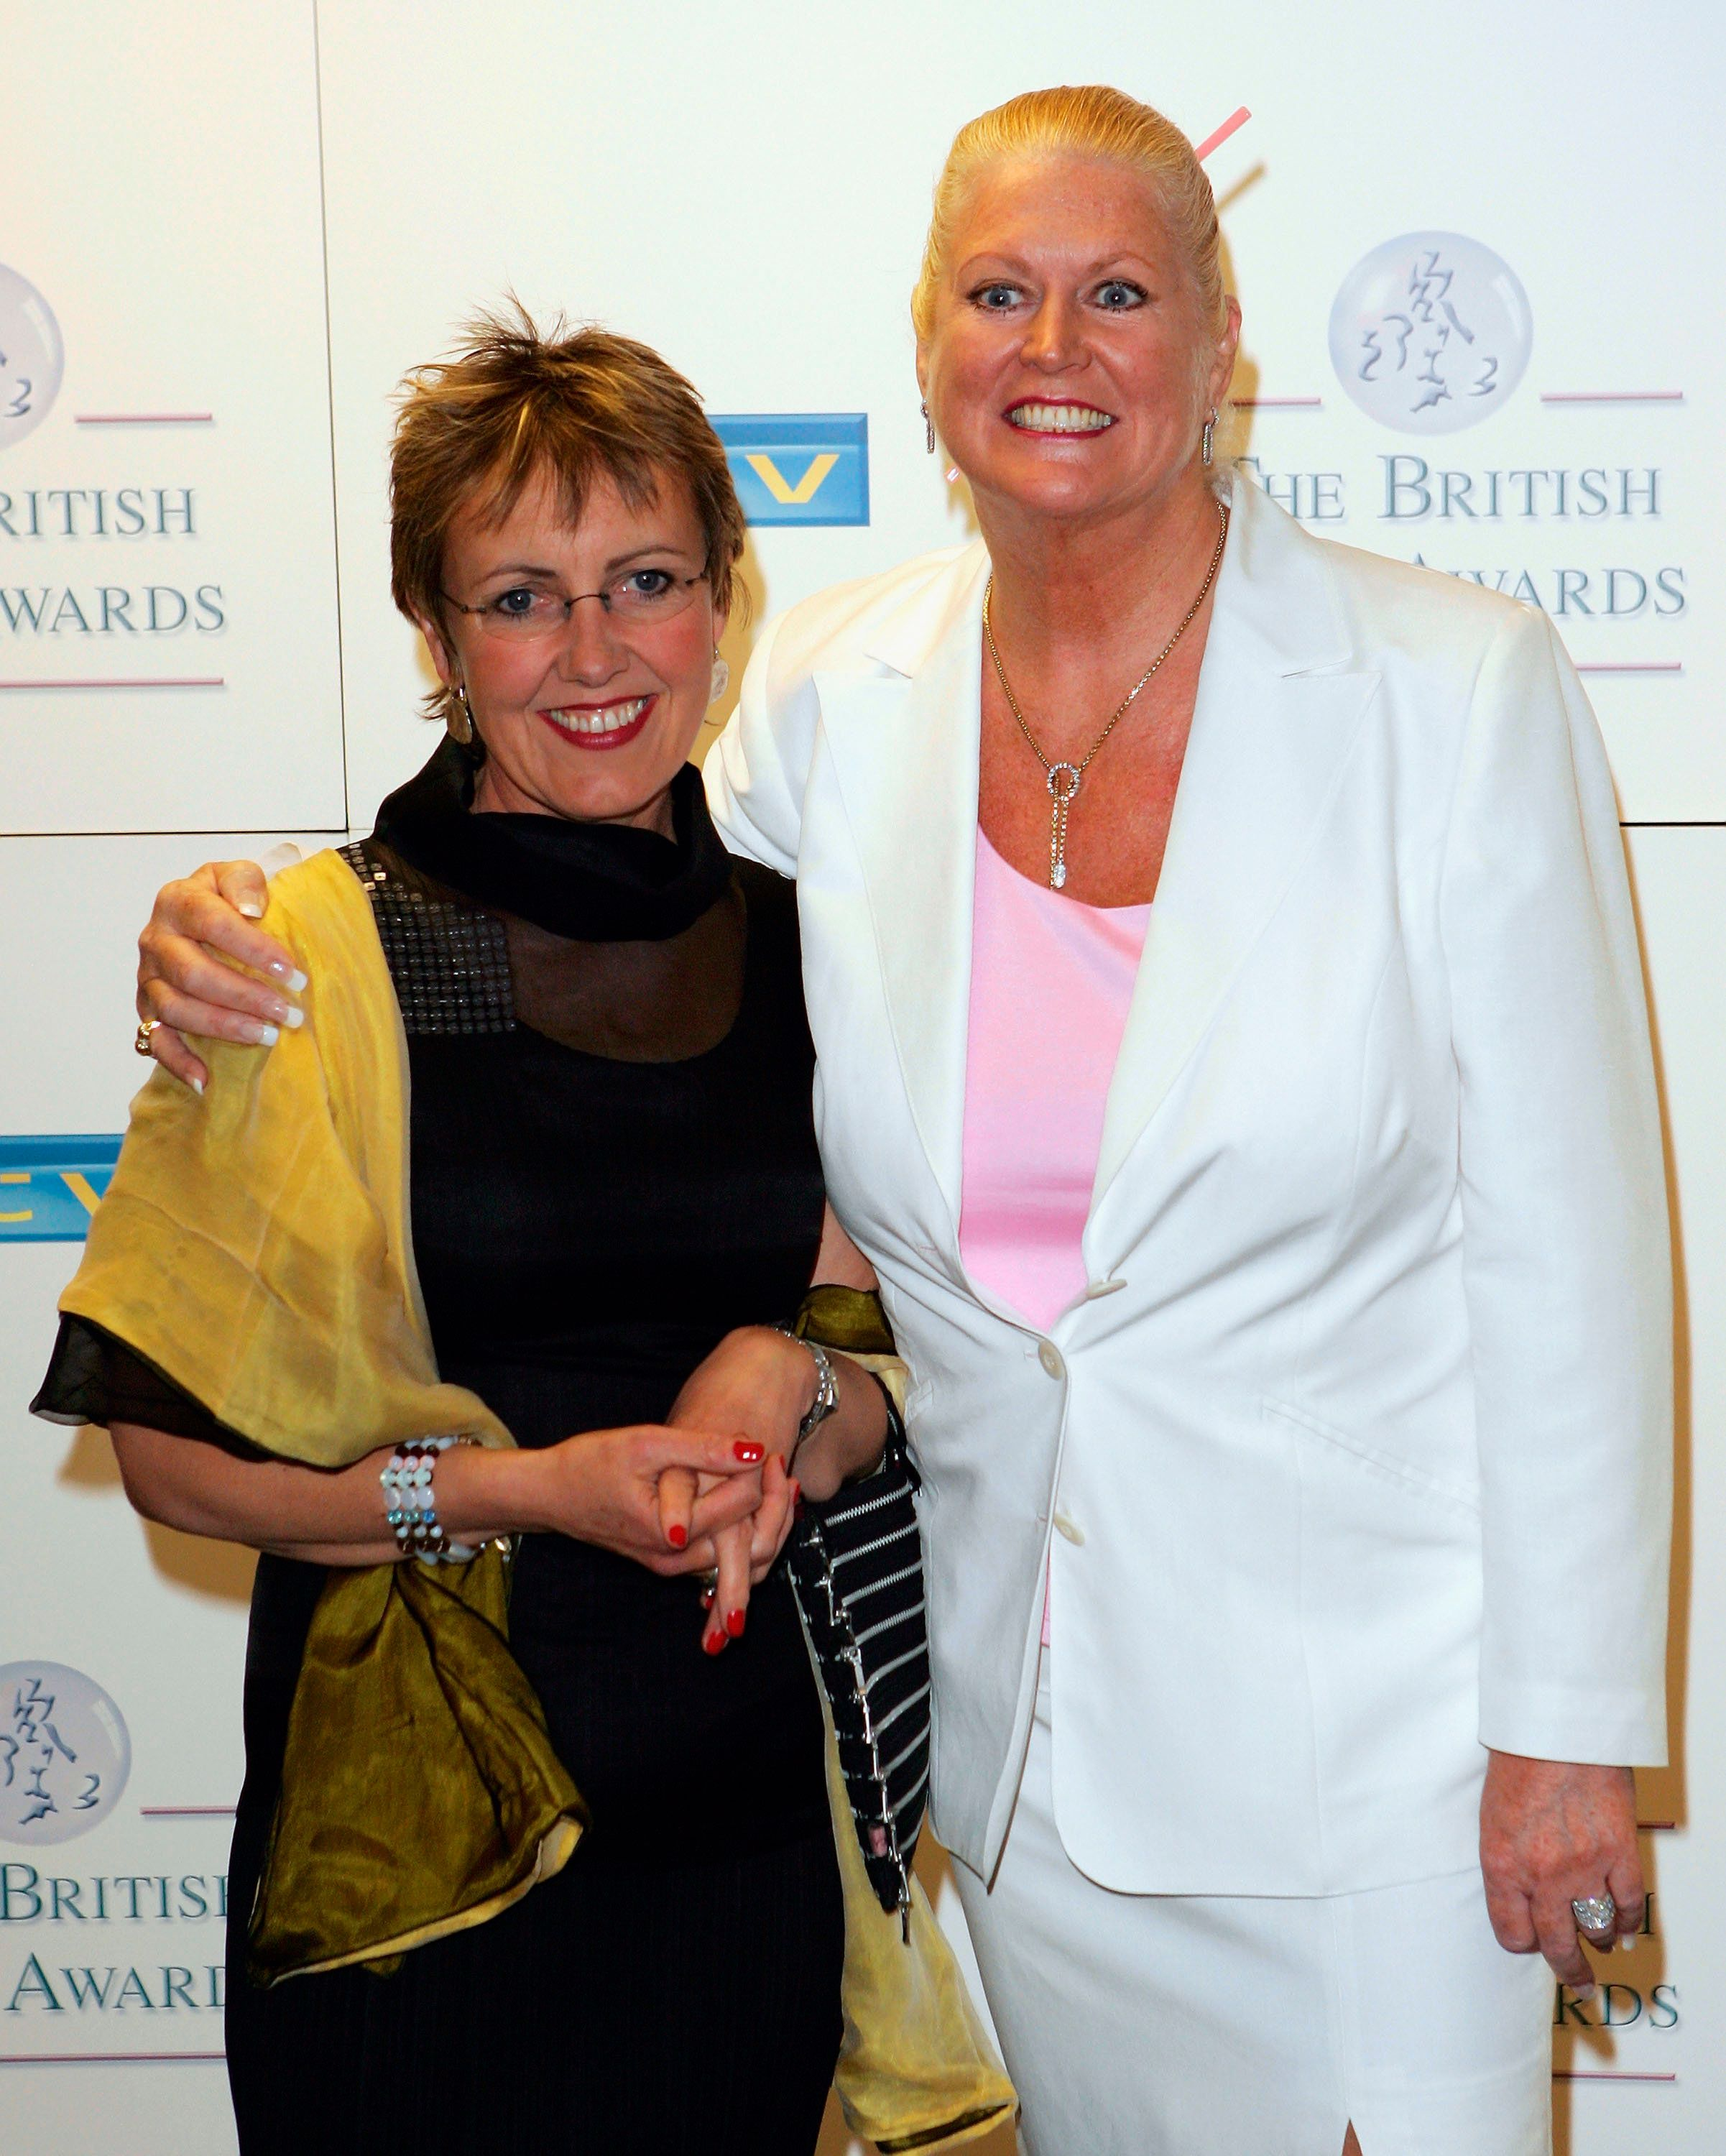 Kim and Aggie in